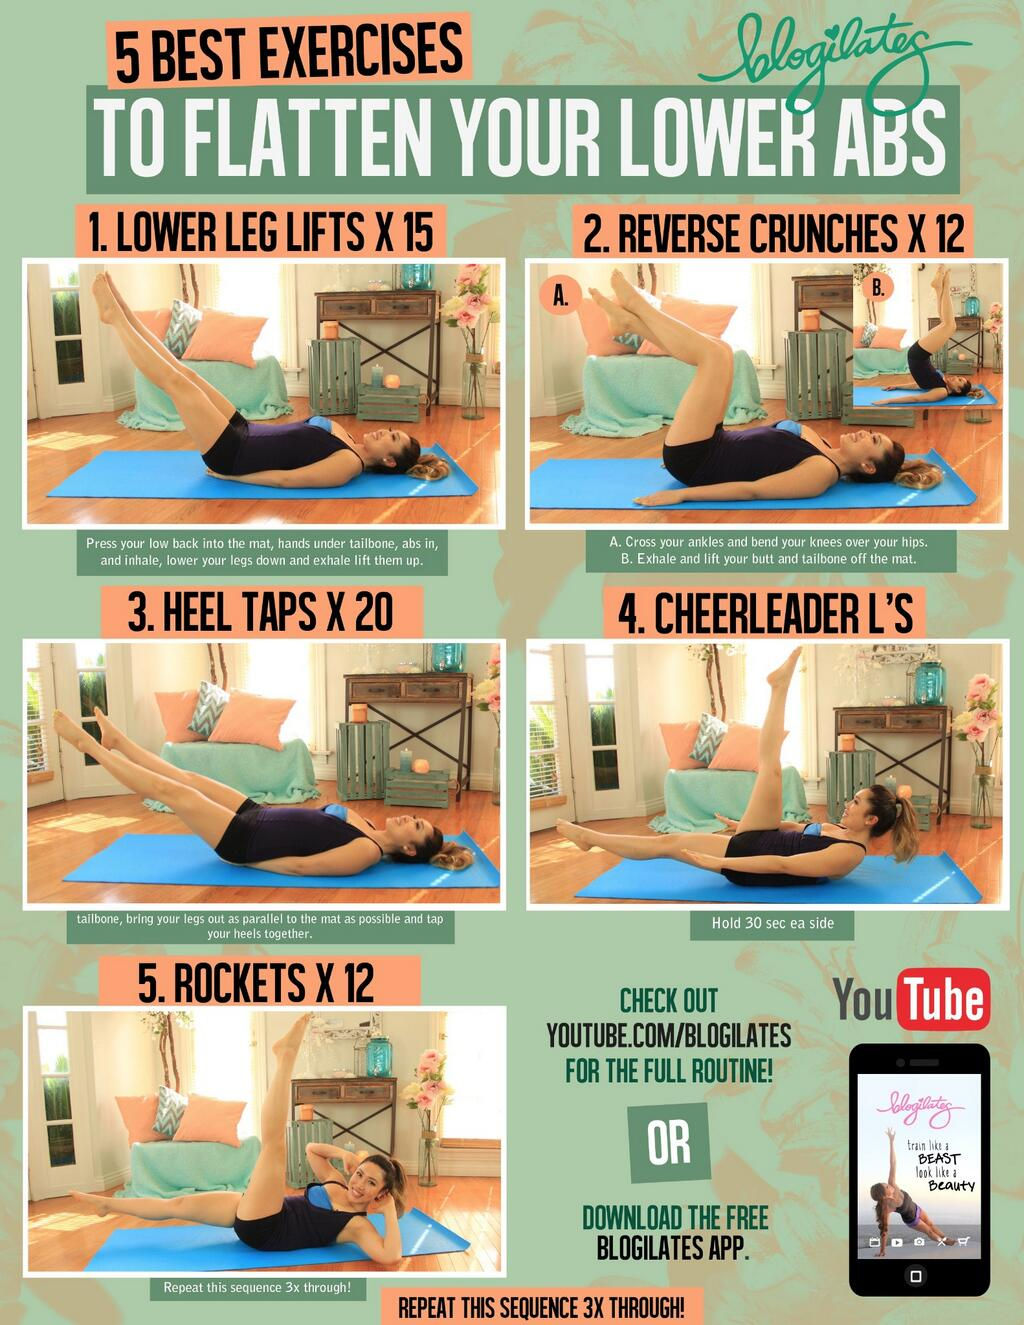 5 Best Exercises To Flatten Your Lower Abs Printable